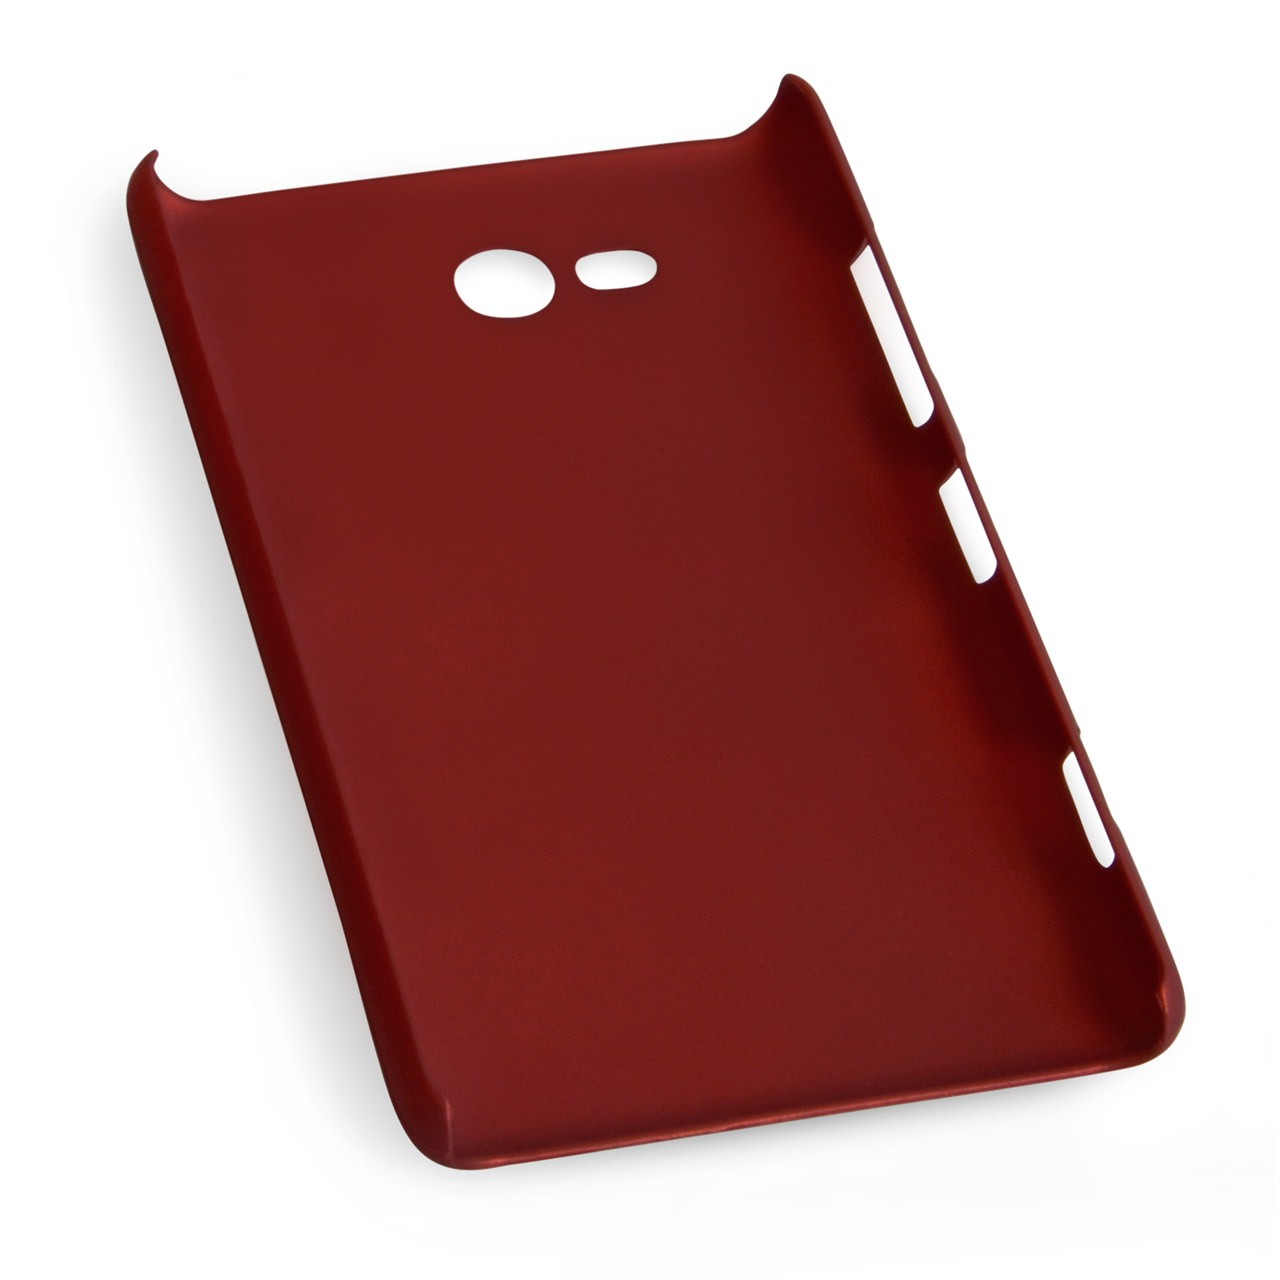 YouSave Accessories Nokia Lumia 820 Hybrid Hard Case - Red